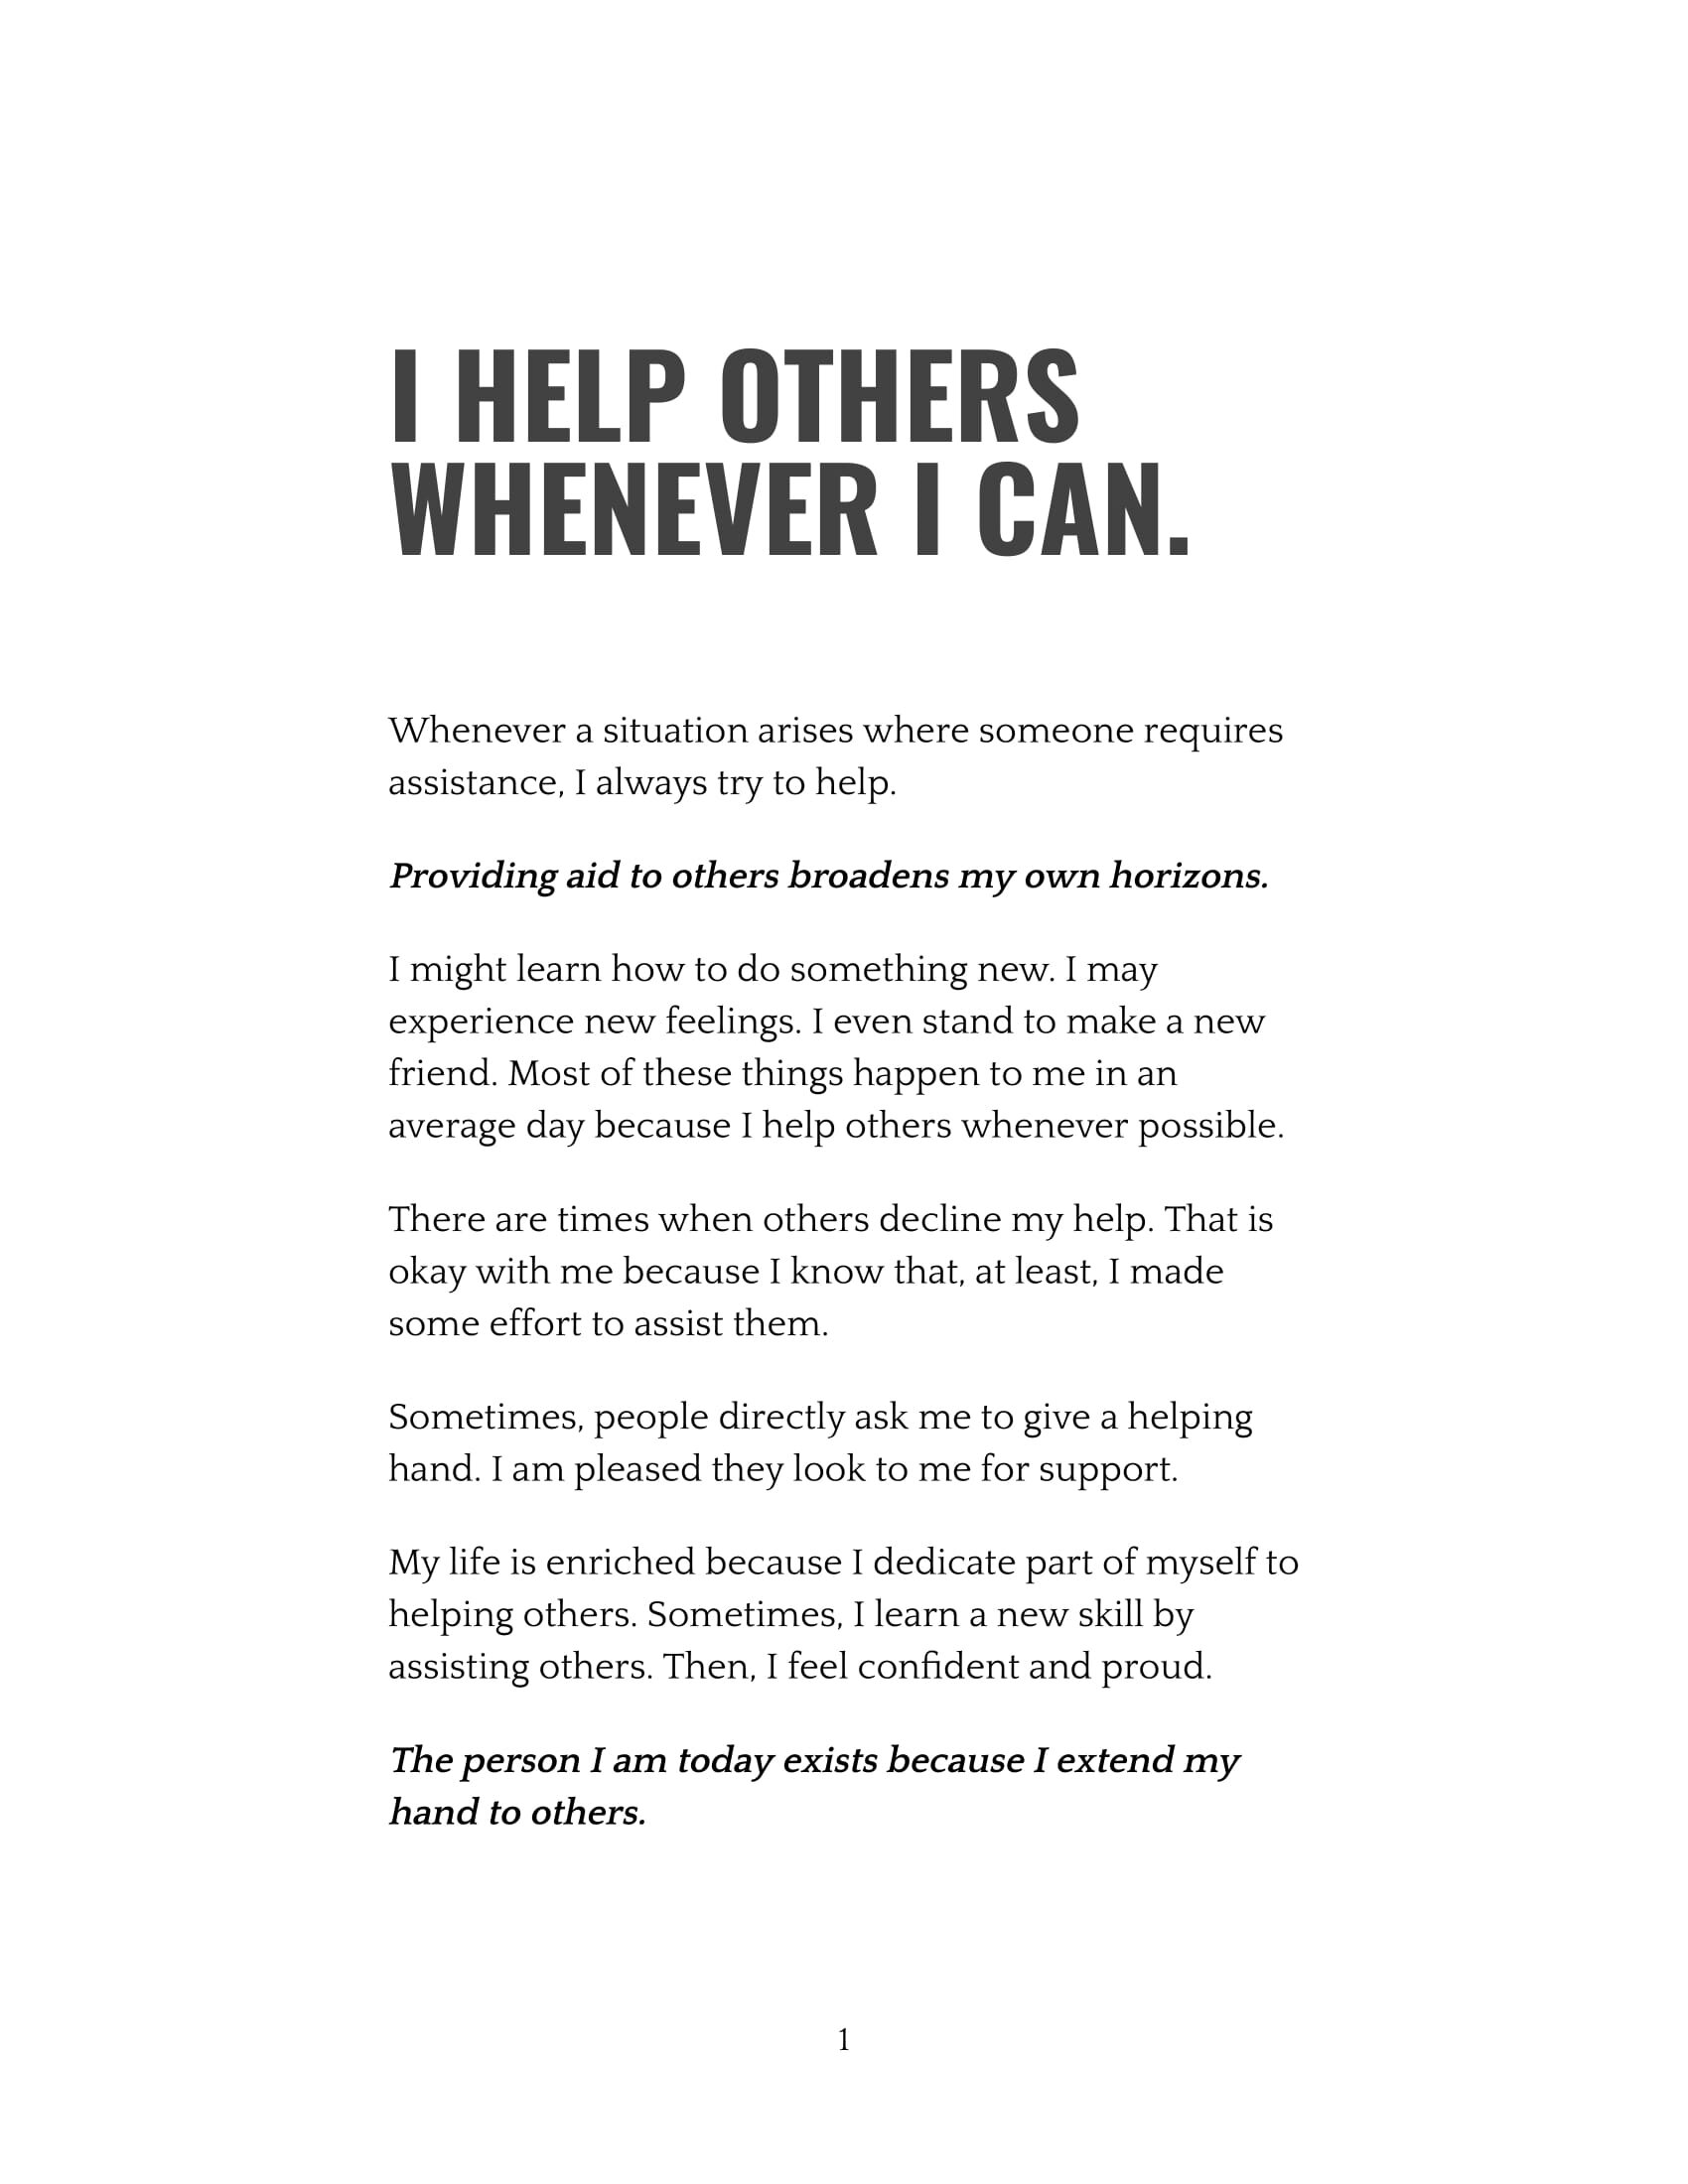 I Help Others Whenever I Can-1.jpg